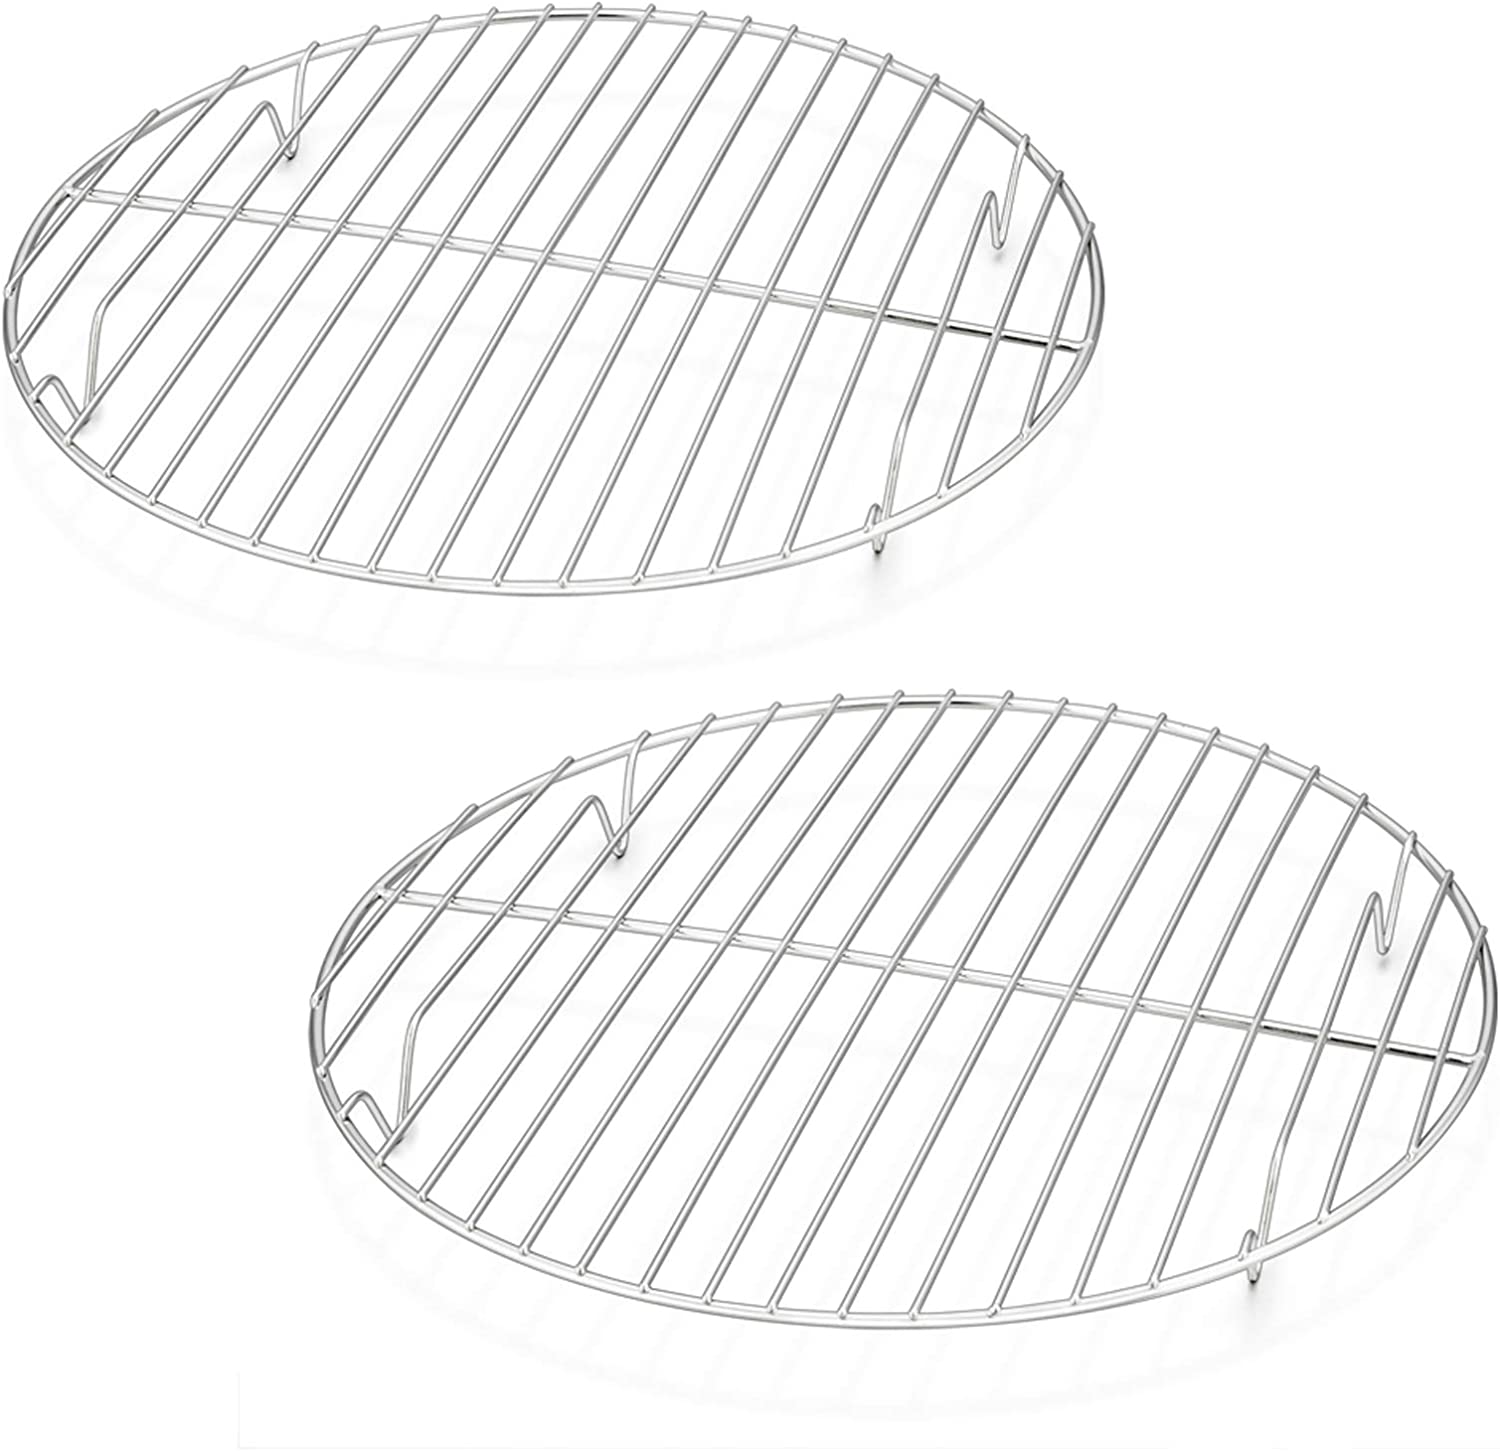 10½ Inch Round Cooling Cooking Racks, E-far Stainless Steel Round Steaming Baking Rack Set of 2, Multi-Purpose for Canning Air Fryer Pressure Cooker, Dishwasher Safe